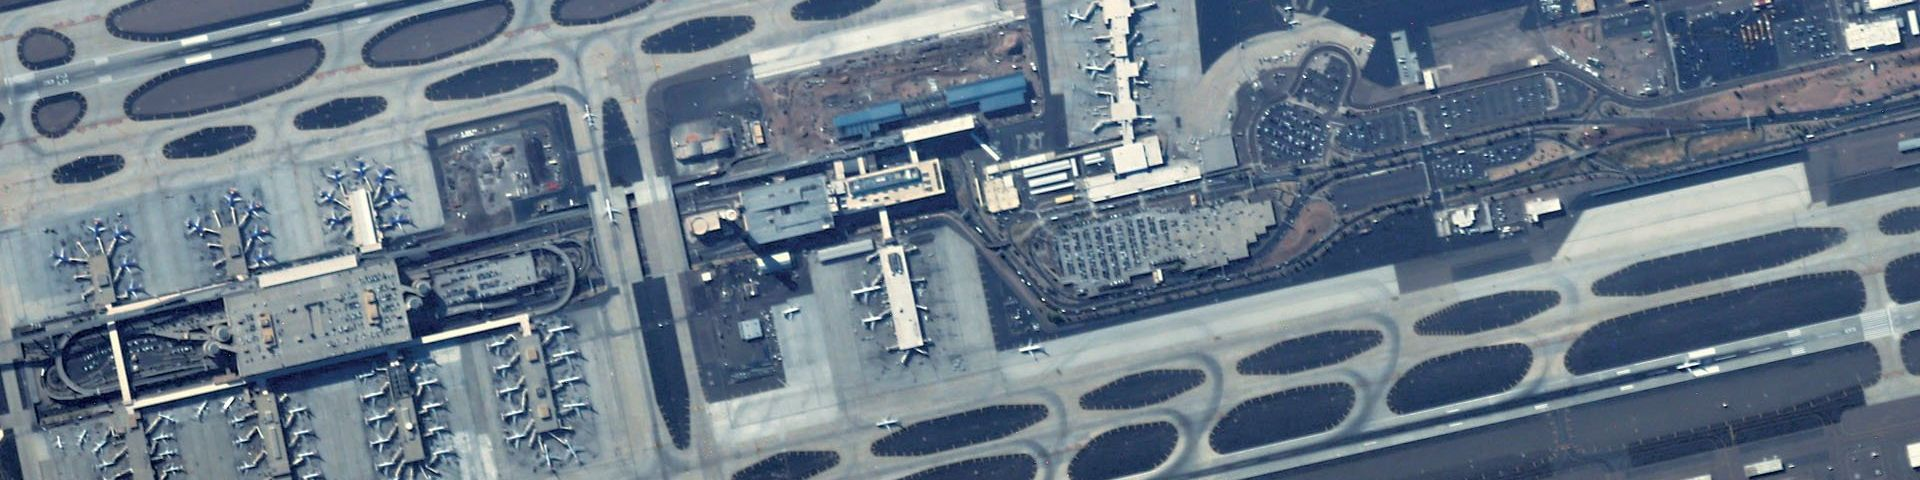 Image of the Phoenix Sky Harbor International Airport in Arizona USA taken by the CE-SAT-I satellite